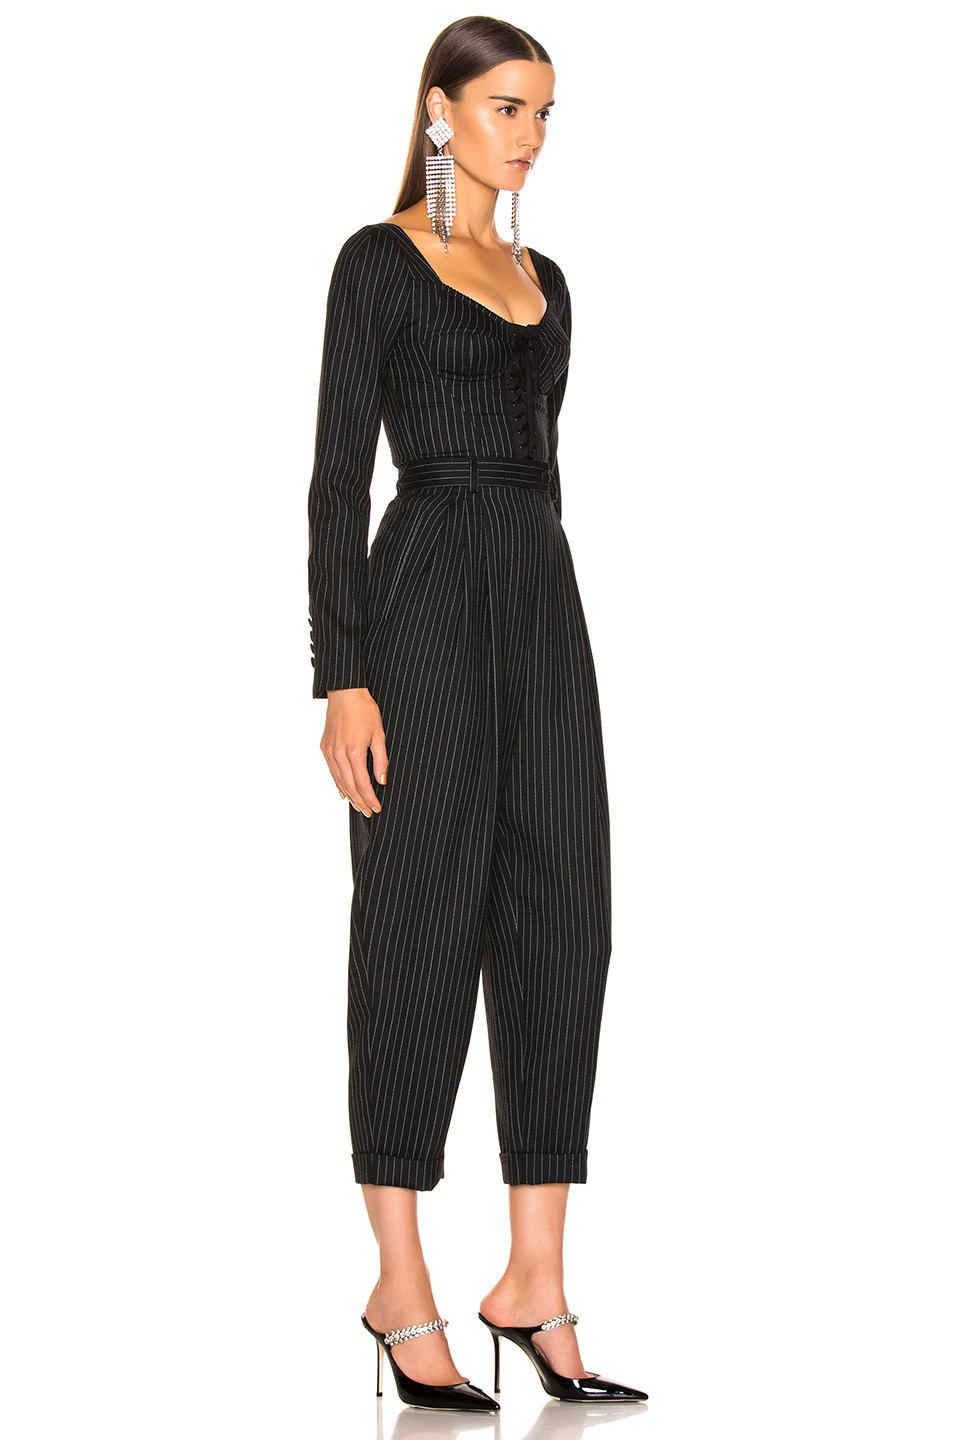 8128dced4a Buy Original Dolce & Gabbana Long Sleeve Pinstriped Jumpsuit at ...